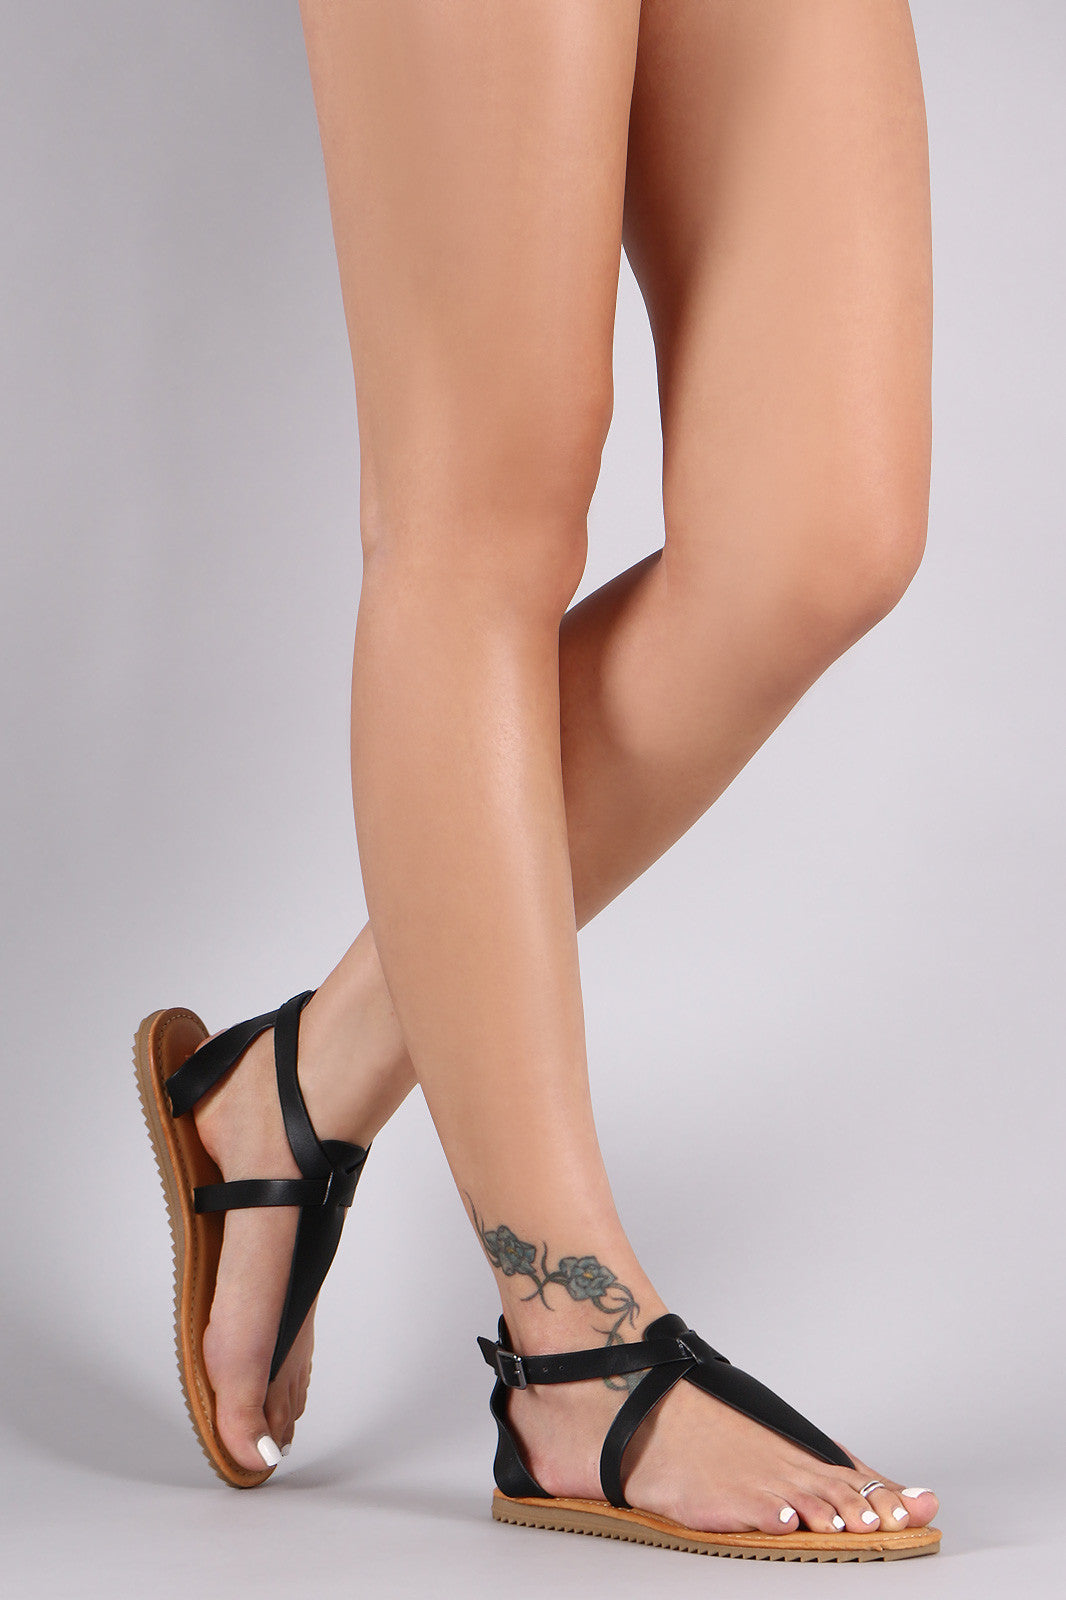 Bamboo Lug Sole Crisscross Ankle Strap Thong Flat Sandal - Thick 'N' Curvy Shop - 3